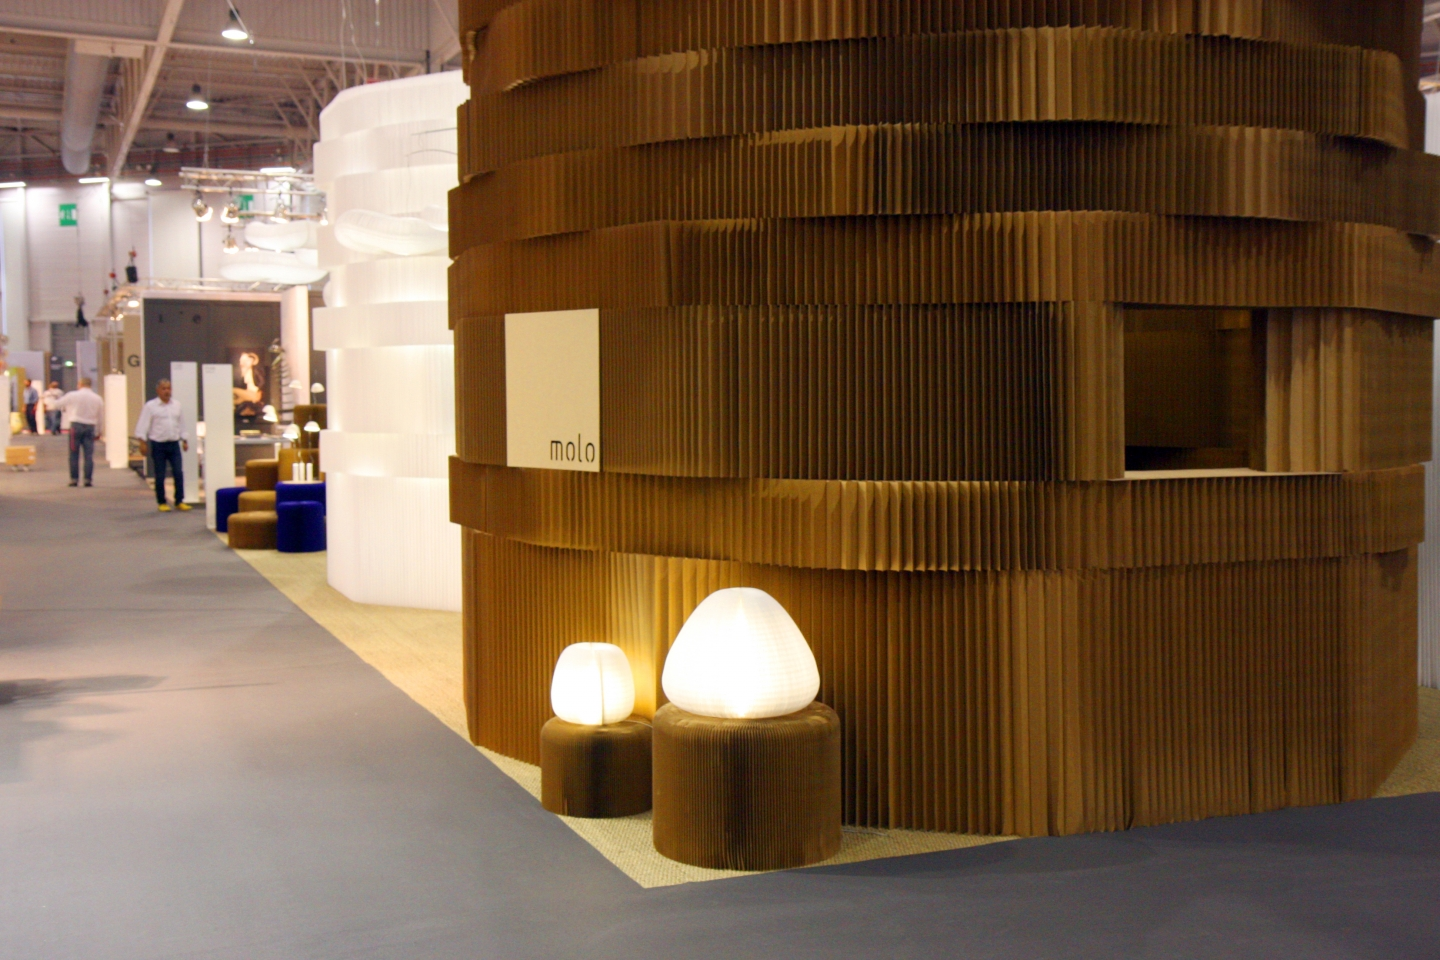 paper furniture display for molo - Two towers of softblocks, one in paper and the one in textile. A pair of urchin softlights glow in the foreground.